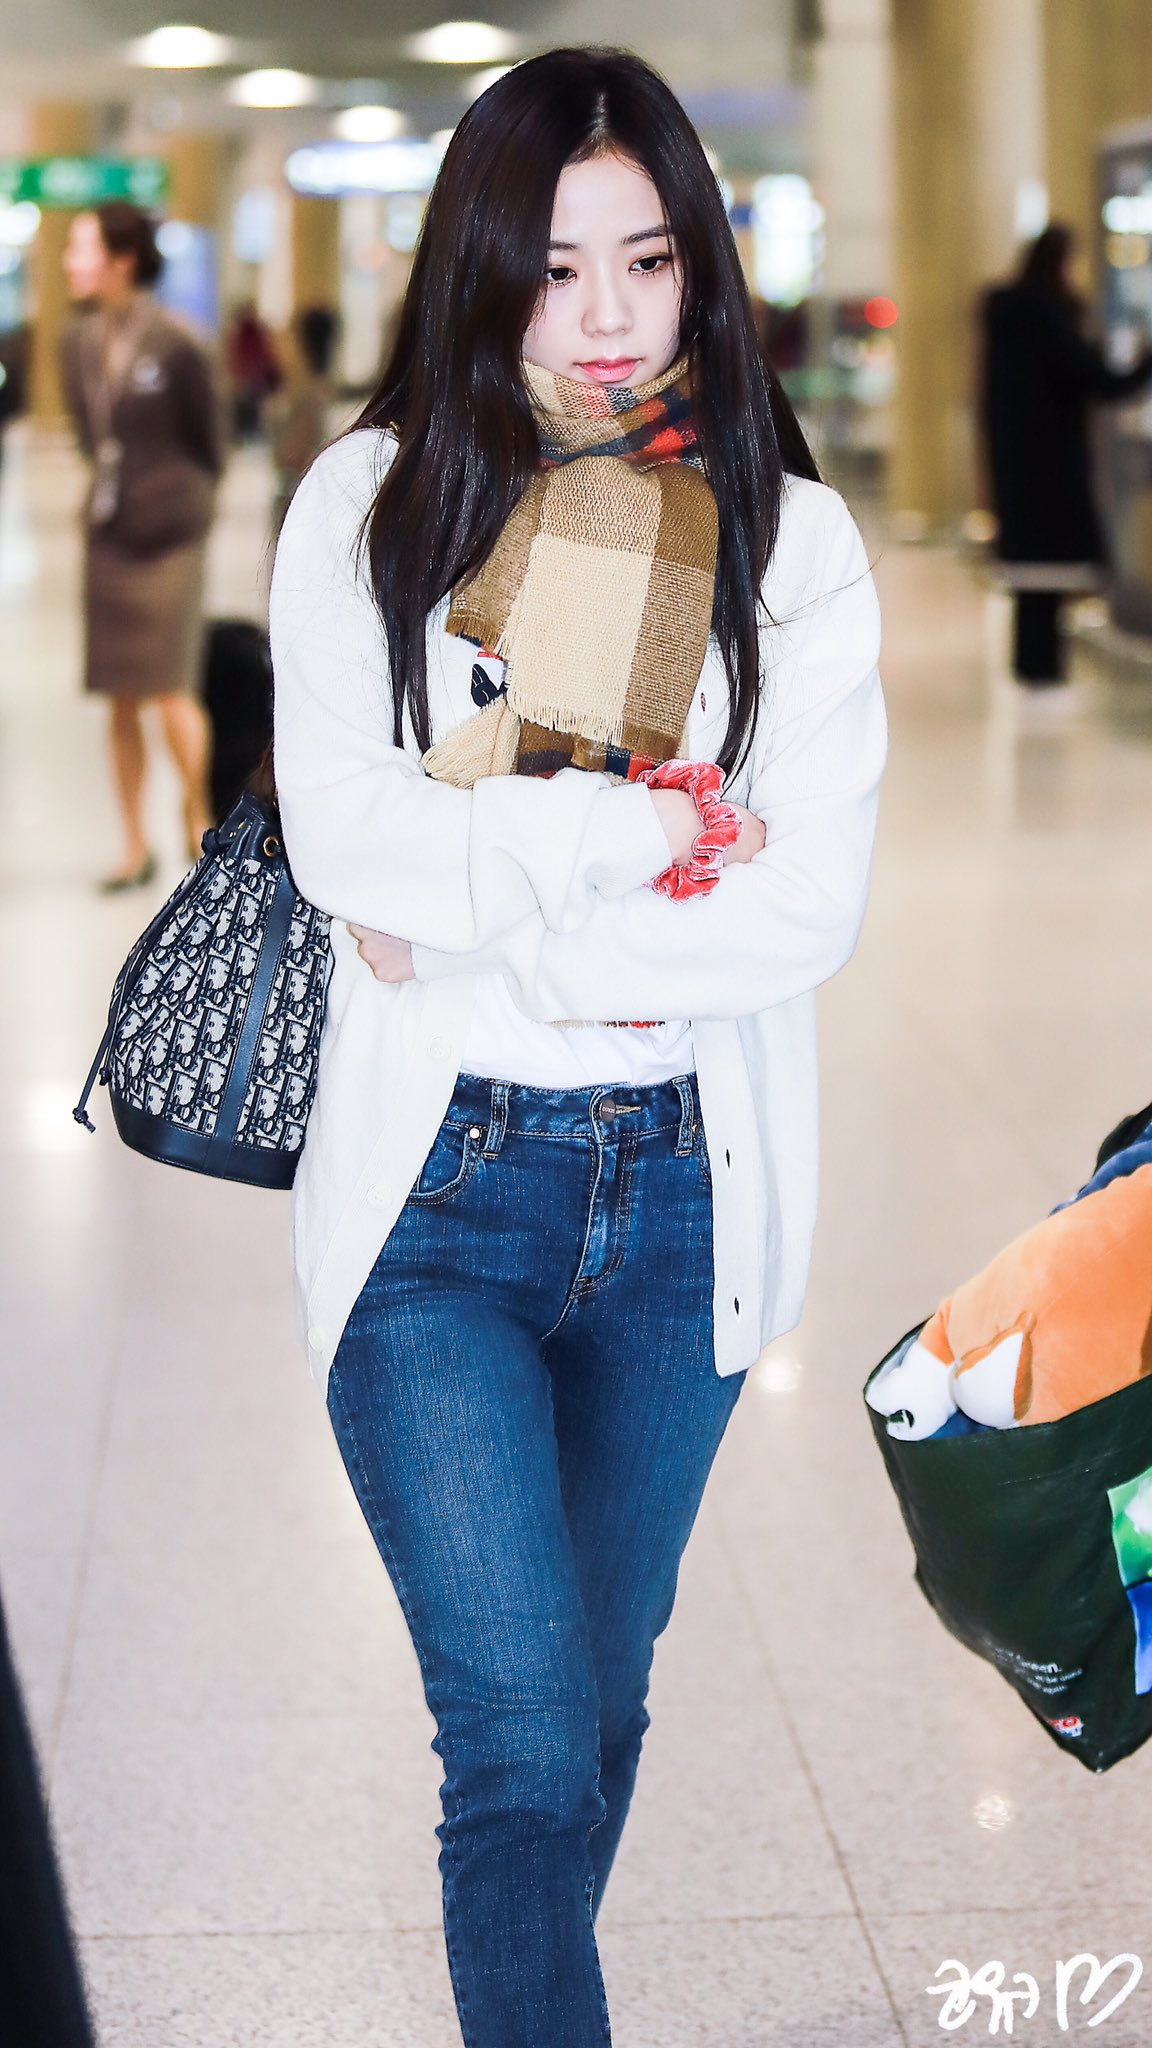 9-BLACKPINK-Jisoo-Airport-Photo-Incheon-21-January-2019